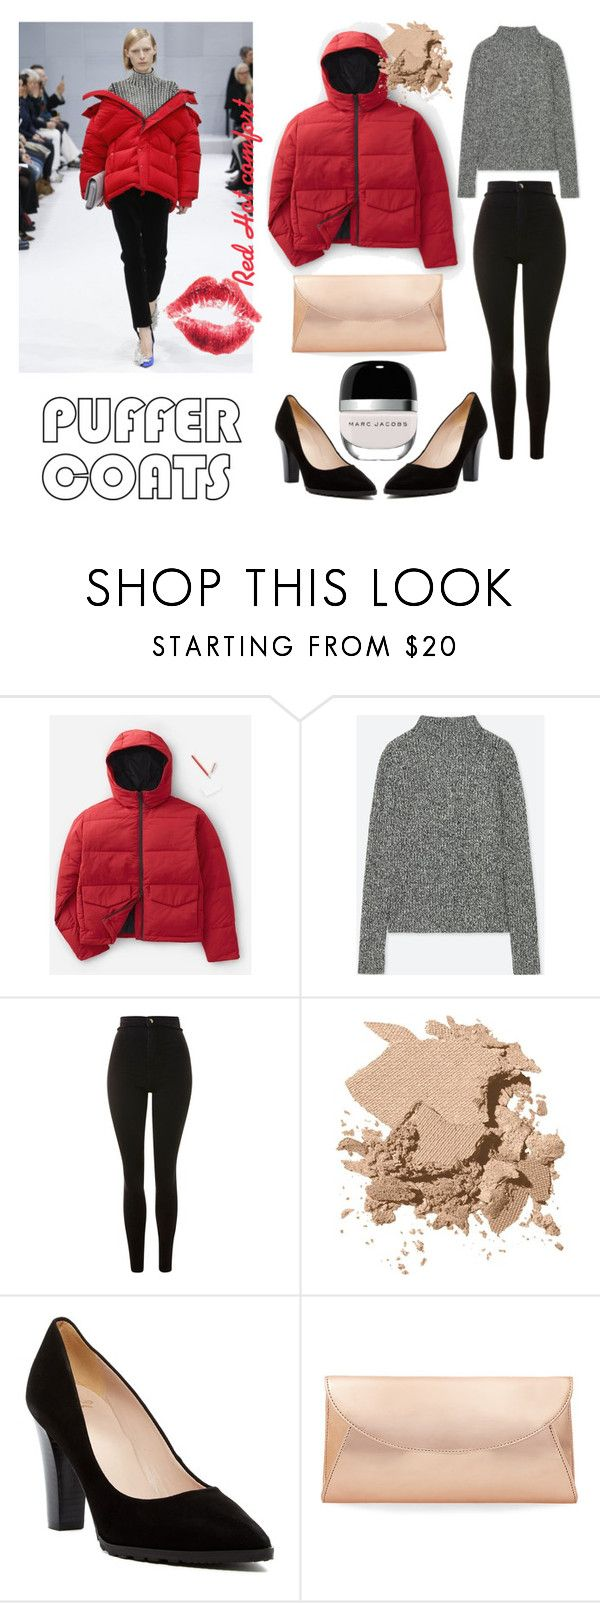 Red Hot Comfort with Puffer Coats by paisleyvelvetandlace on Polyvore featuring Uniqlo, Everlane, Topshop, André Assous, Steve Madden, Bobbi Brown Cosmetics, Marc Jacobs and puffercoats